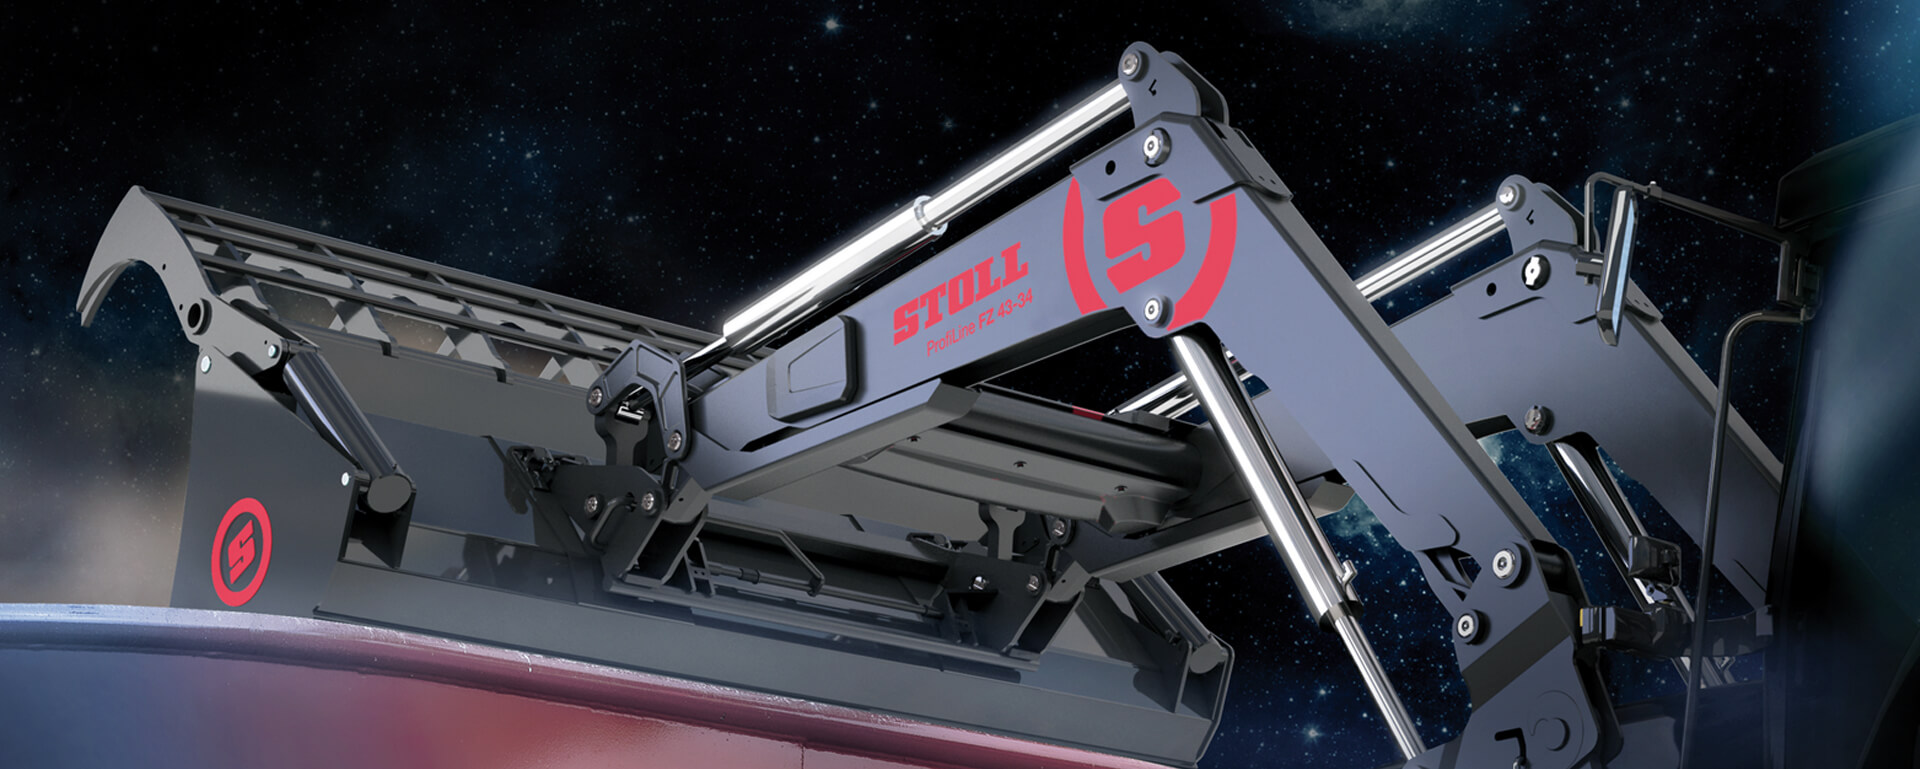 STOLL Company Profile - Front loaders in use worldwide